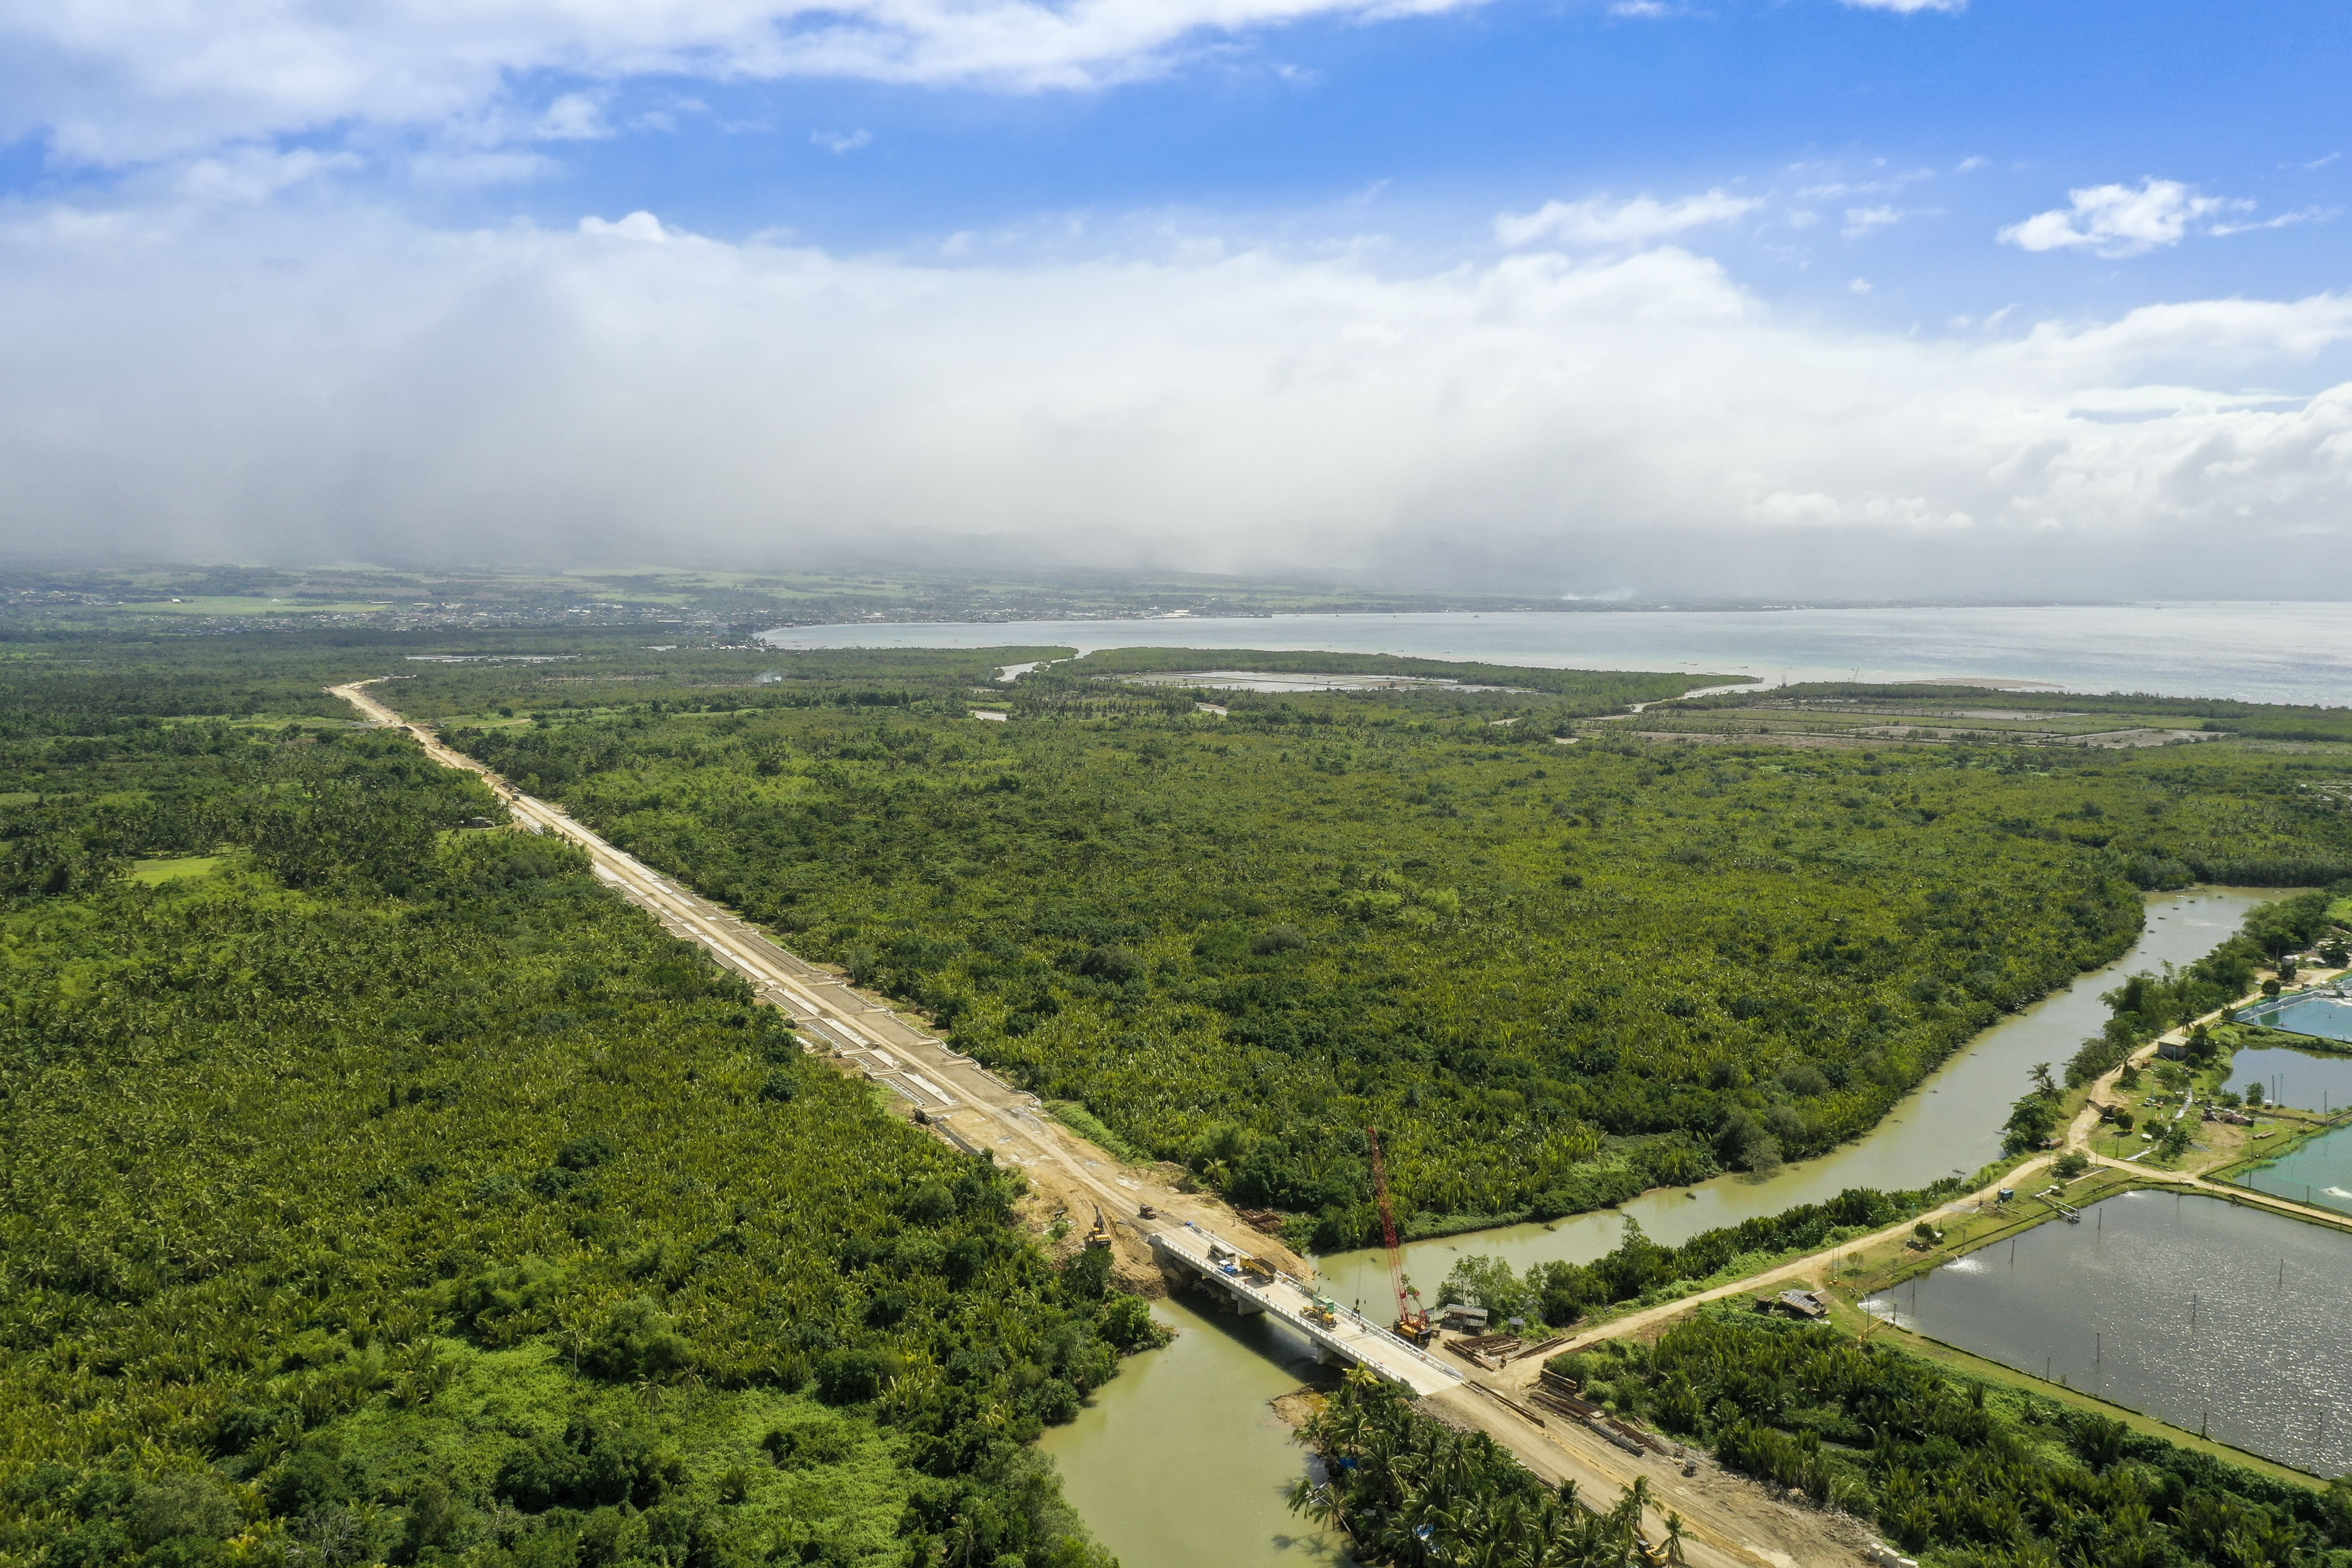 Aerial view of a bridge in Ormoc